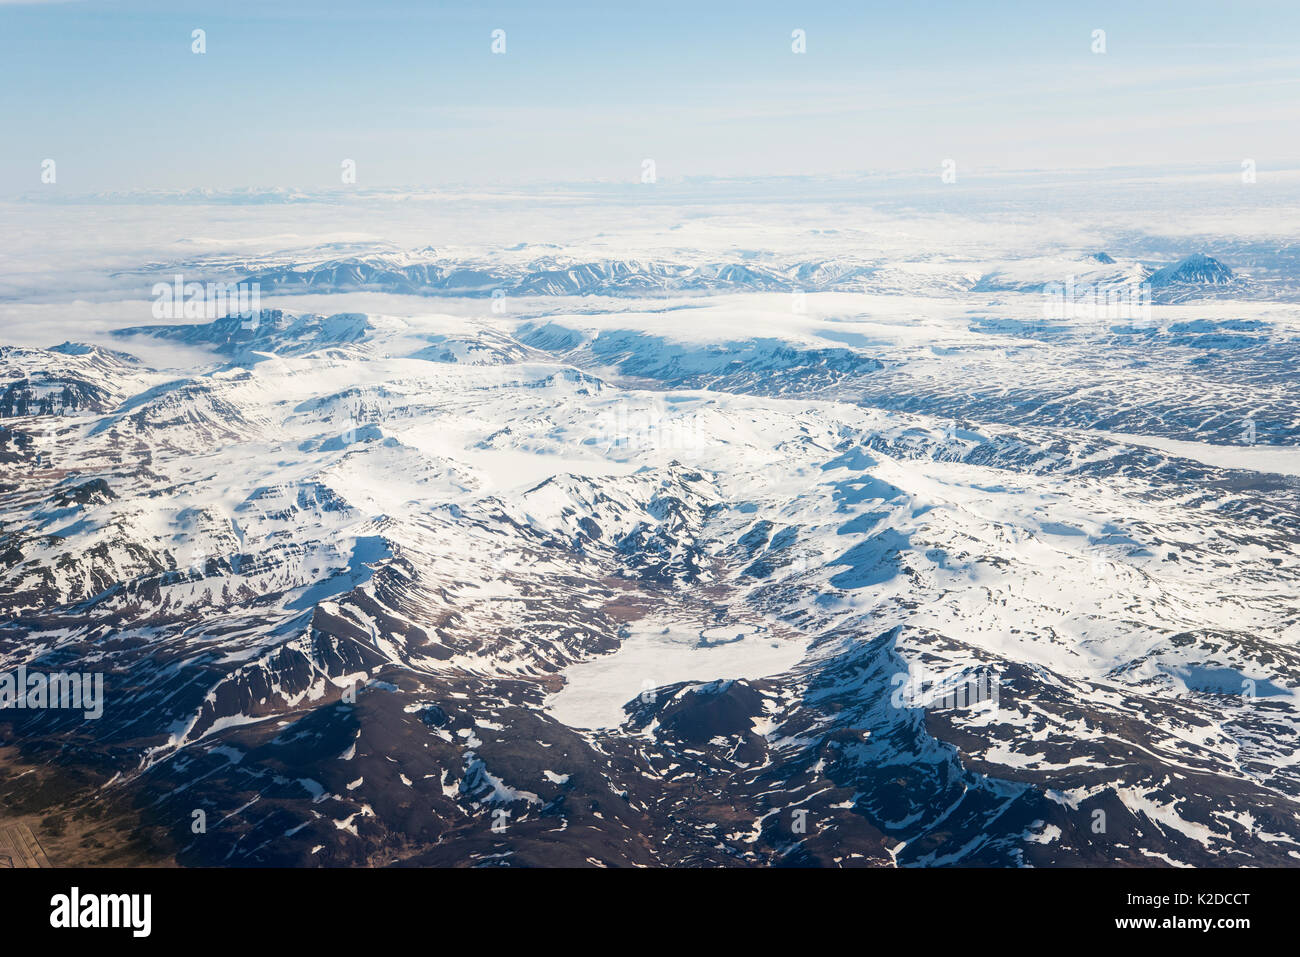 Aerial view of Mountains showing through cloud cover, Westfjords, Iceland. April - Stock Image